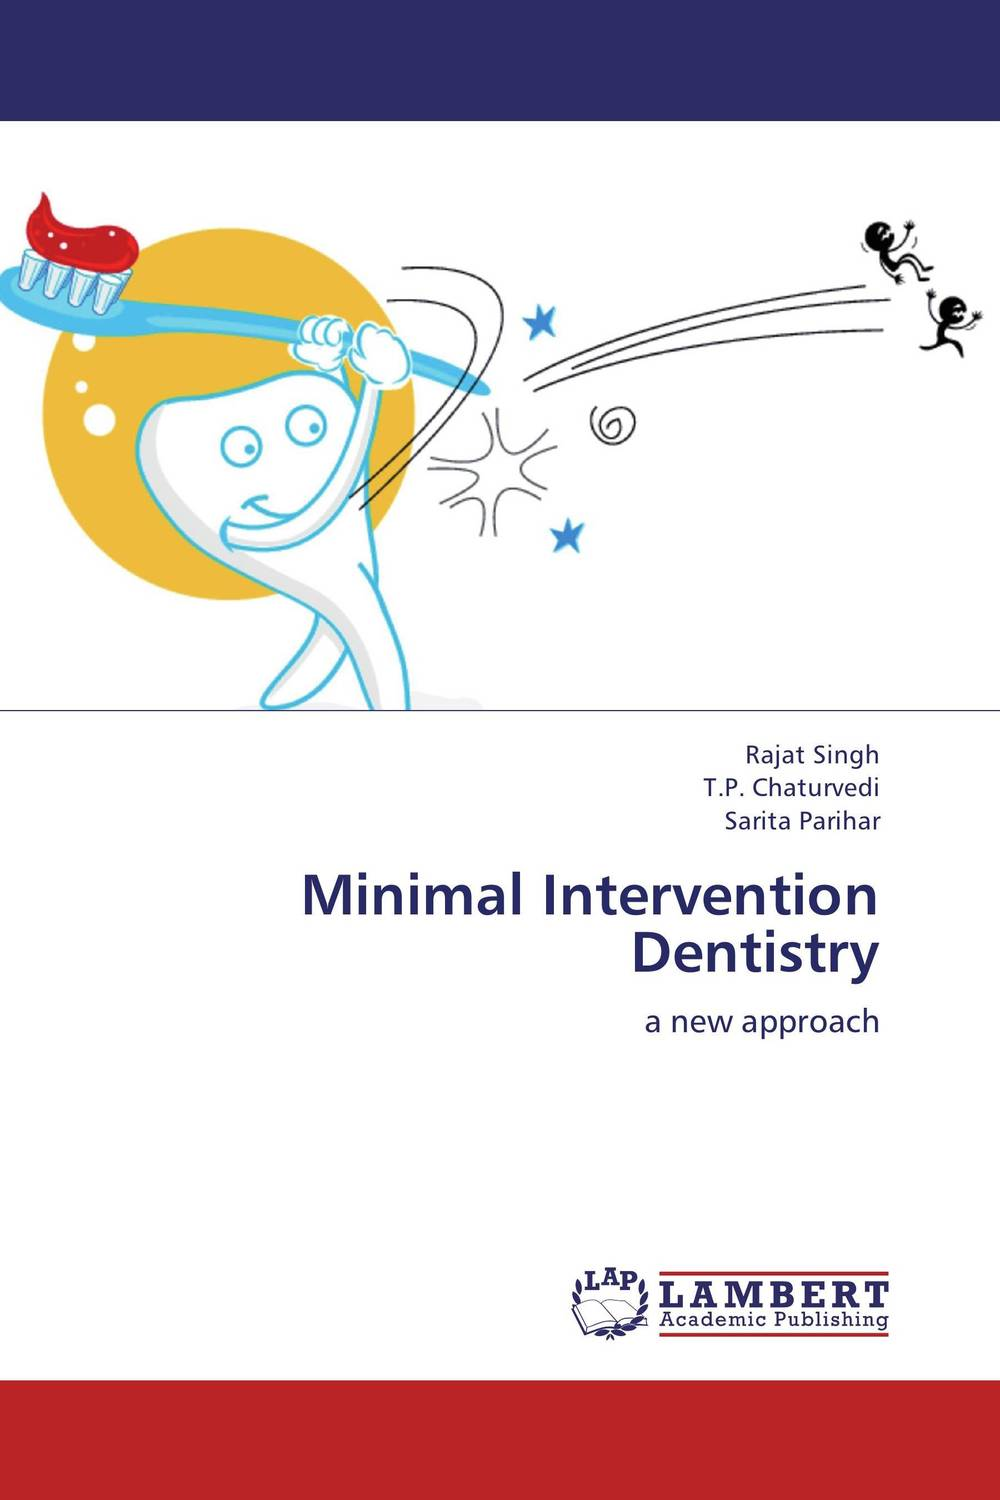 Minimal Intervention Dentistry karanprakash singh ramanpreet kaur bhullar and sumit kochhar forensic dentistry teeth and their secrets